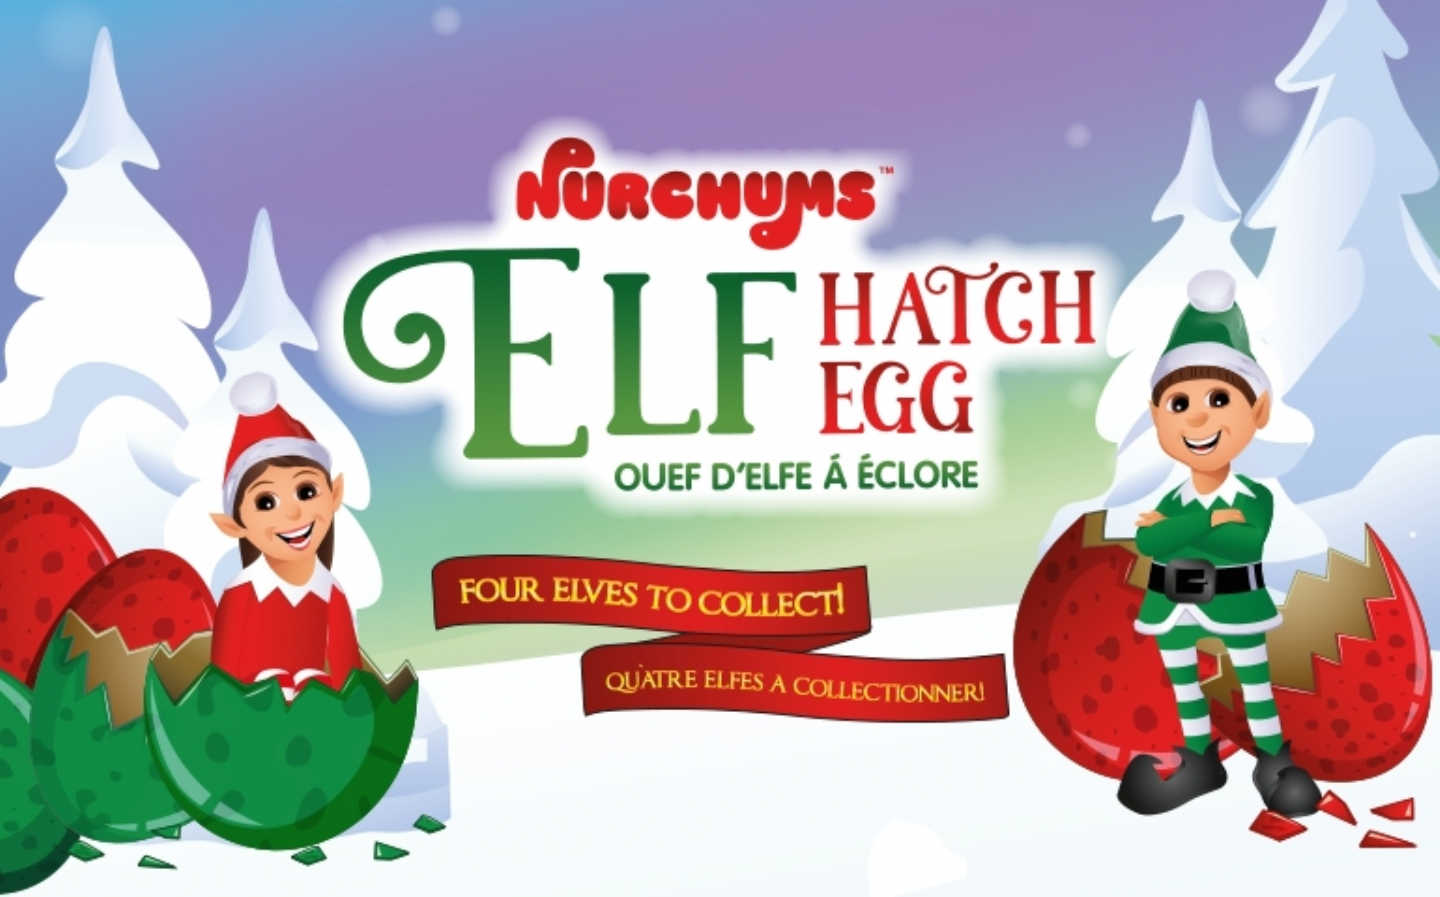 Elf Hatching Eggs return for Holiday Season 2018